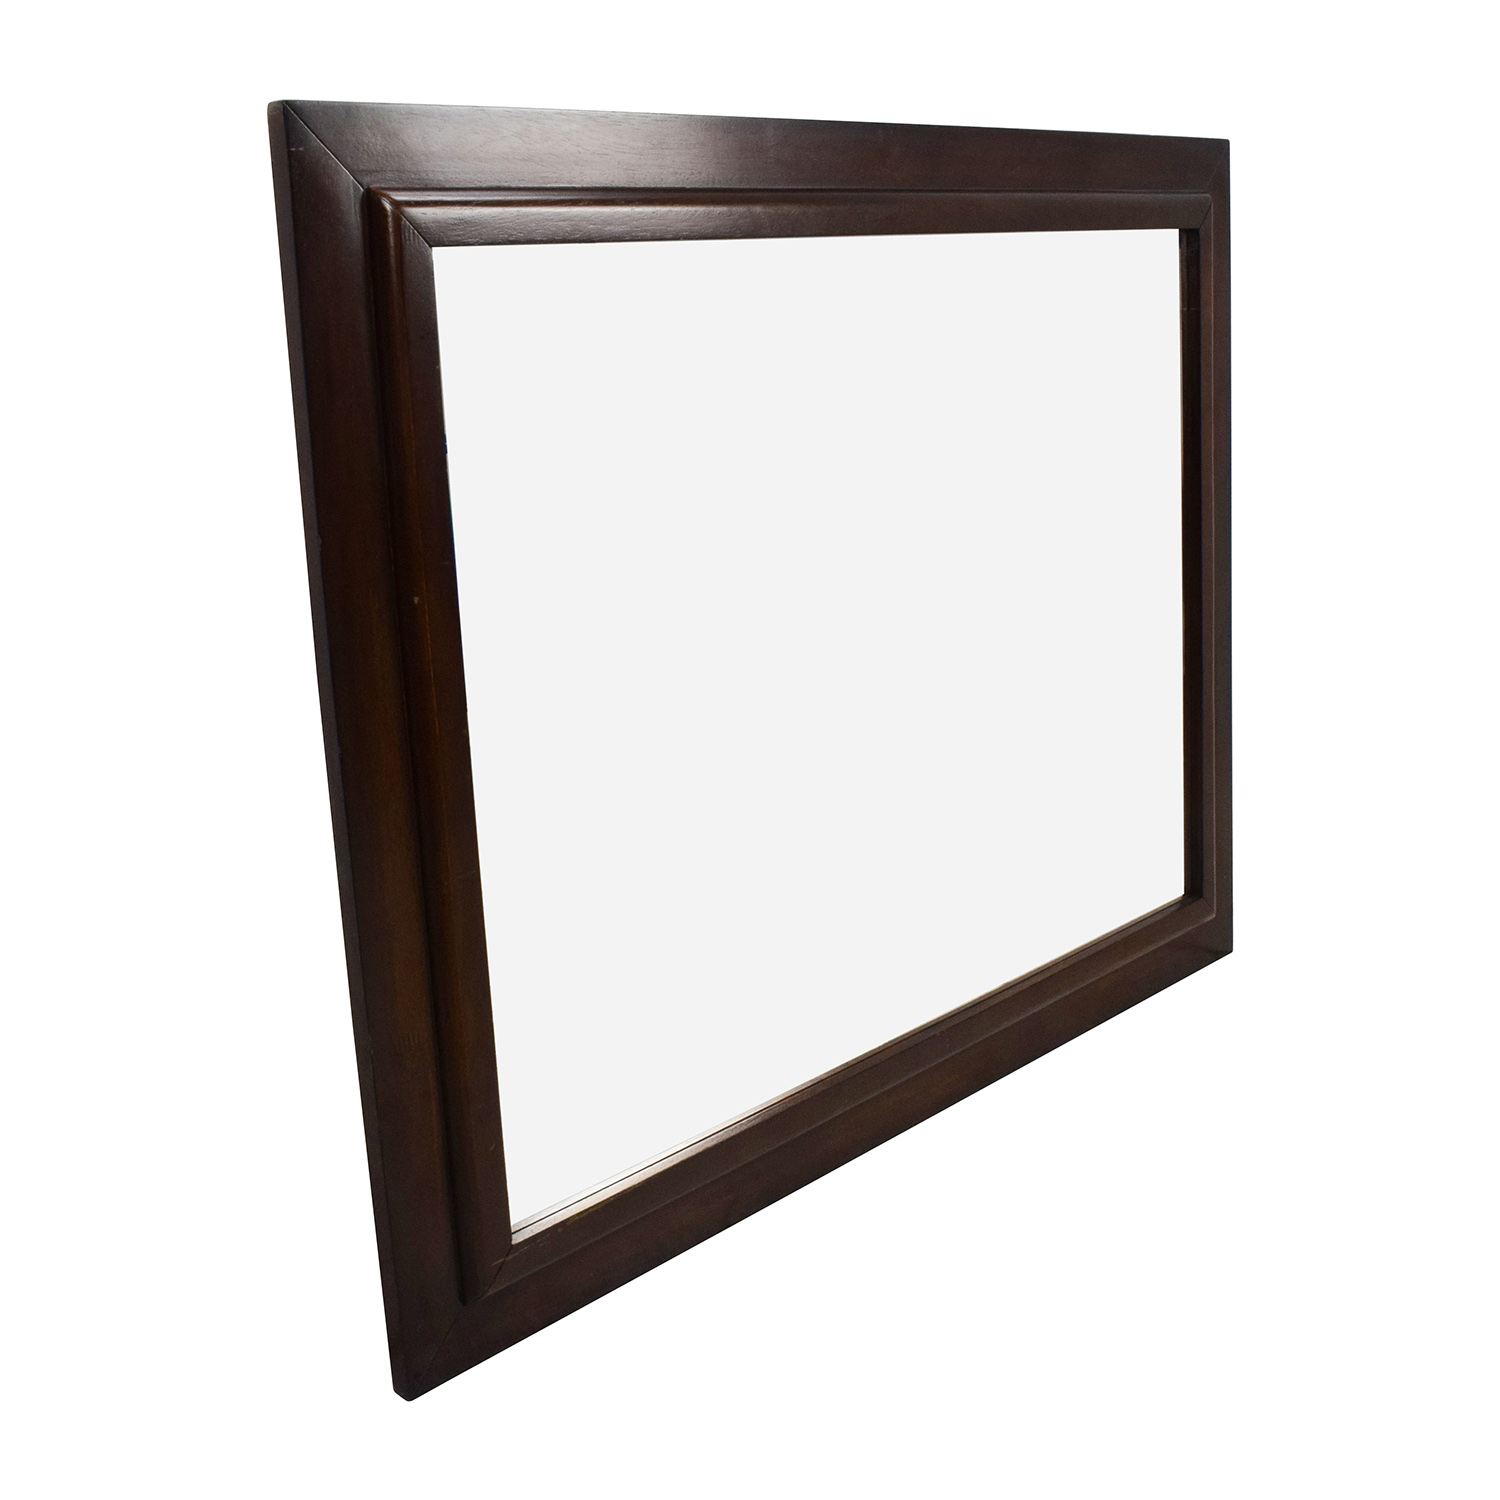 Large Square Wood Framed Wall Mirror nj